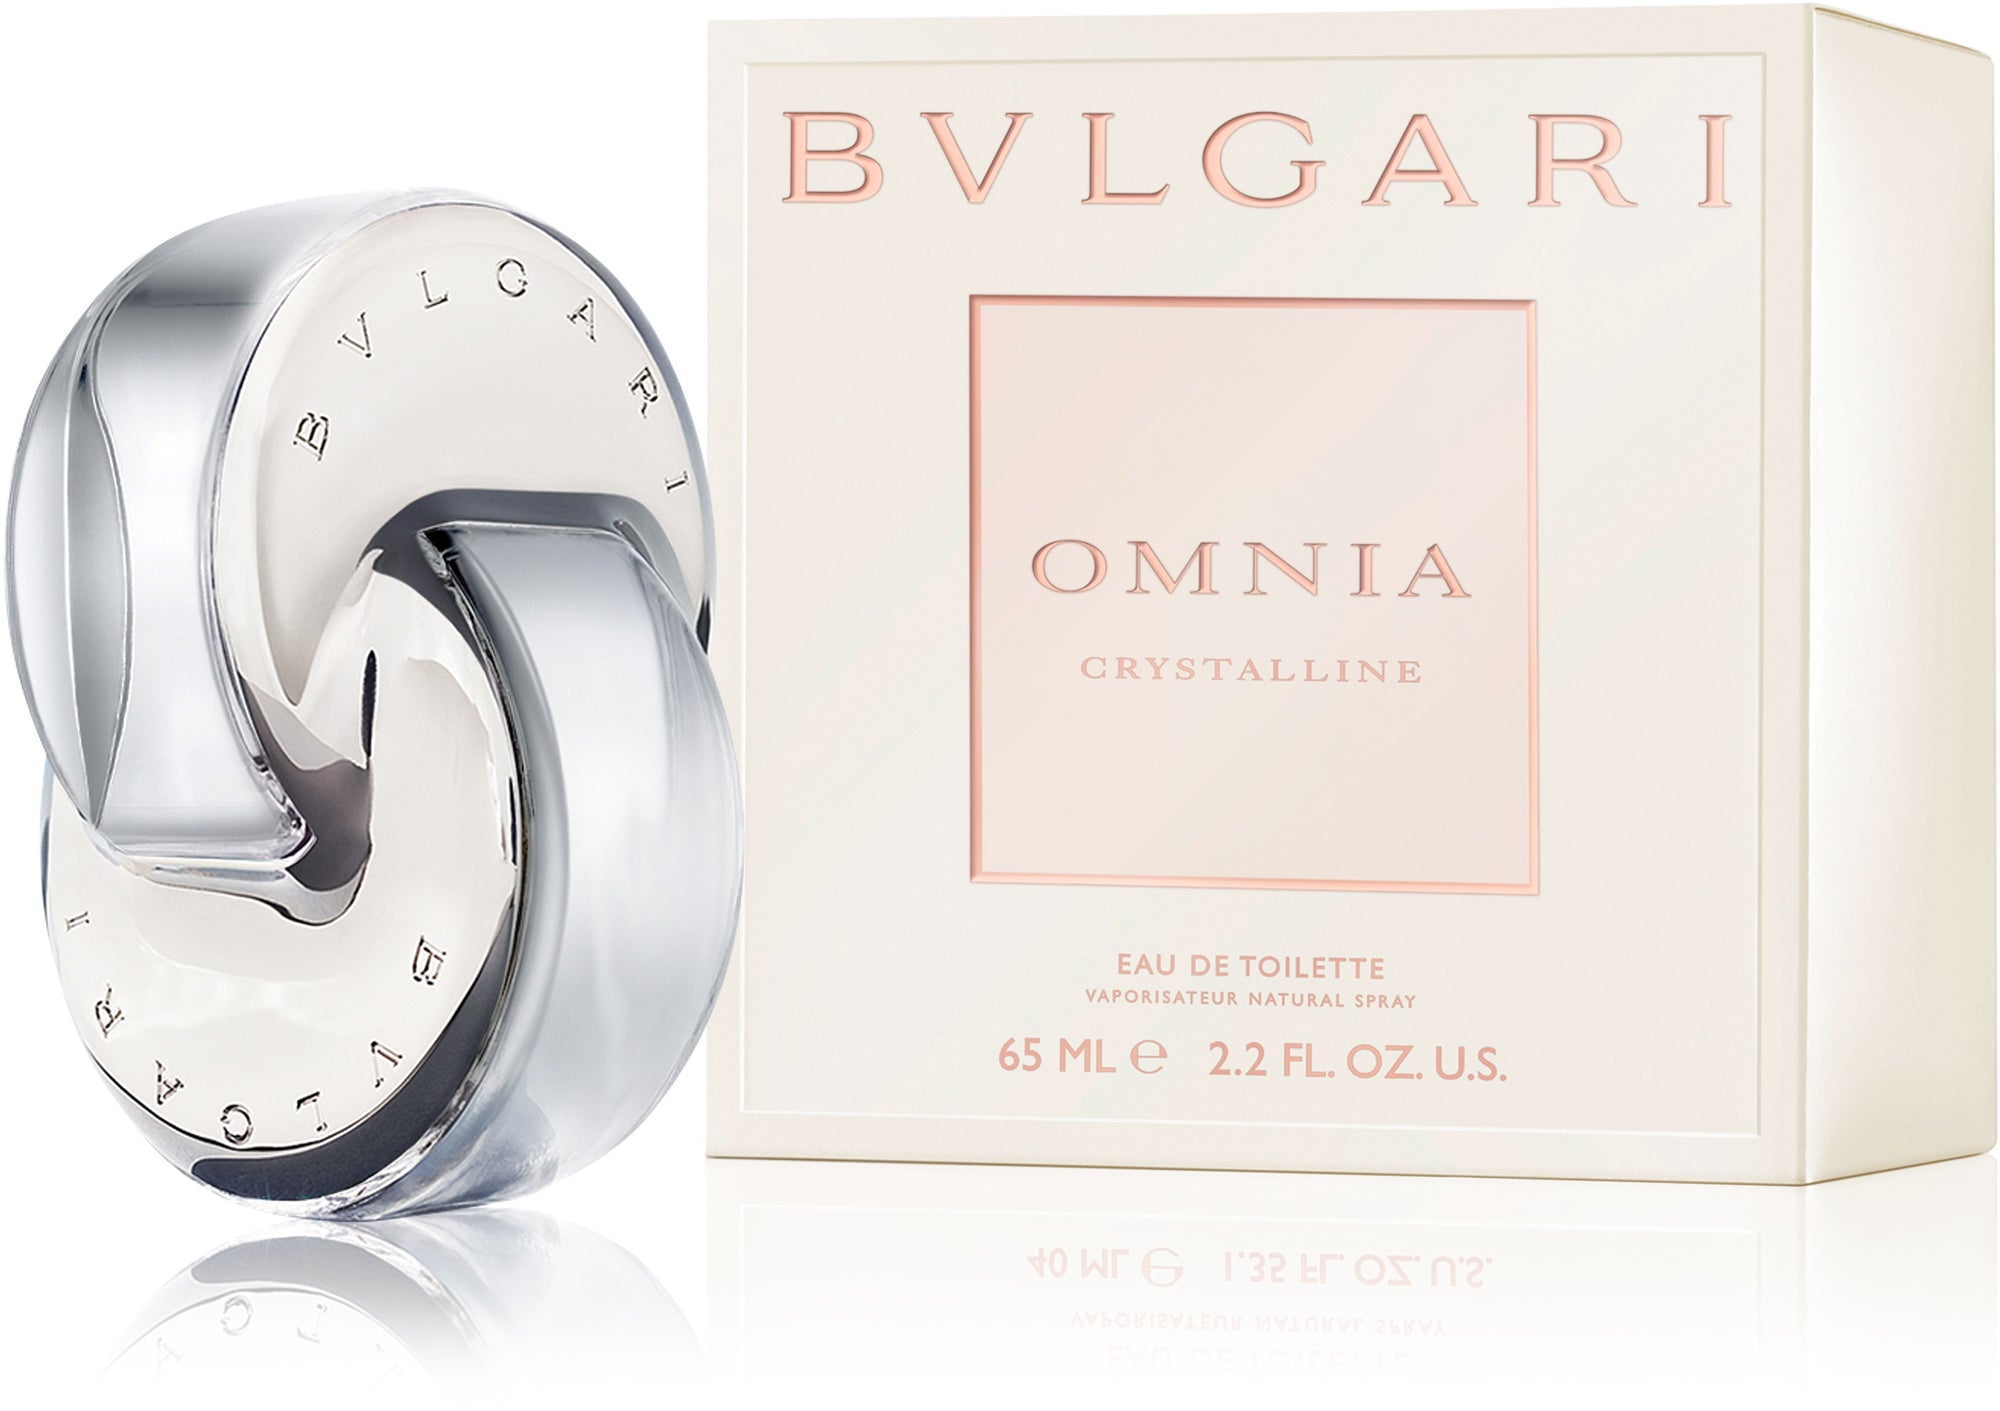 Bvlgari Omnia Crystaline EDT 65mL WOMEN